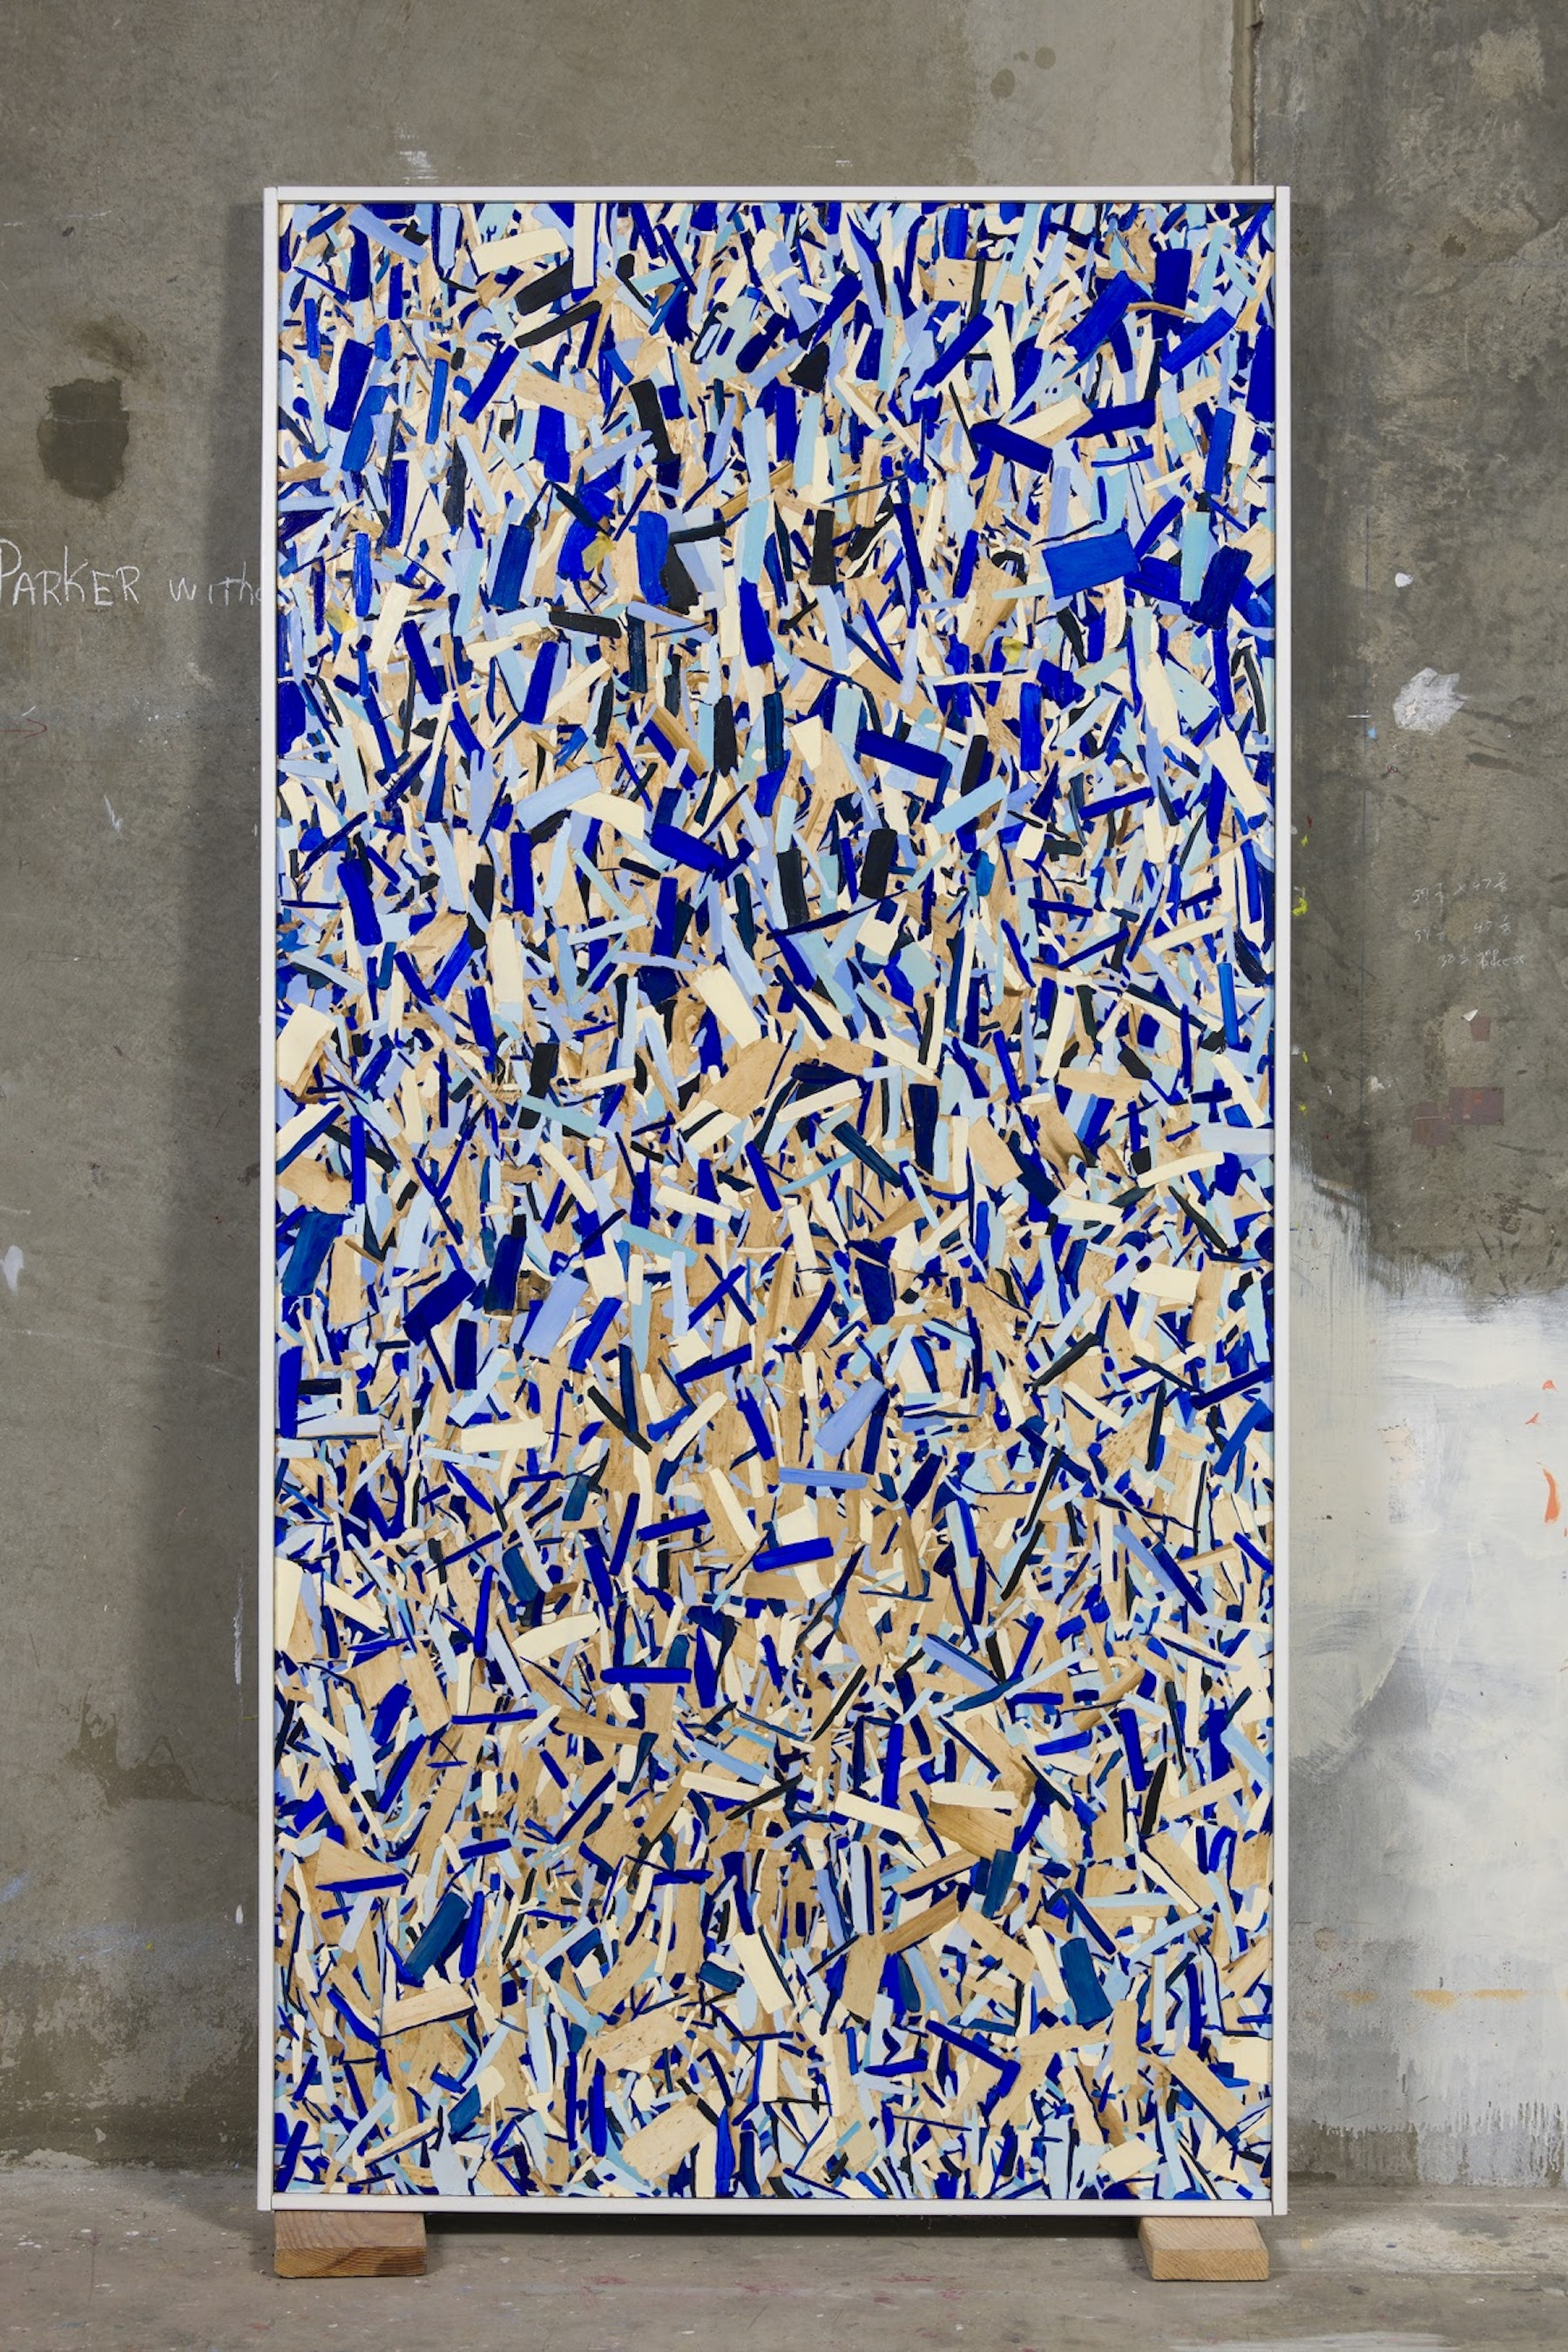 """Kim Dingle """"HOME DEPOT COLORING BOOK (rain),"""" 2017 Oil on OSB with artist's frame 97.75 x 49.5 x 2.5"""" [HxWxD] (248.29 x 125.73 x 6.35 cm) Inventory #DIN189 Courtesy of the artist and Vielmetter Los Angeles Photo credit: Robert Wedemeyer"""